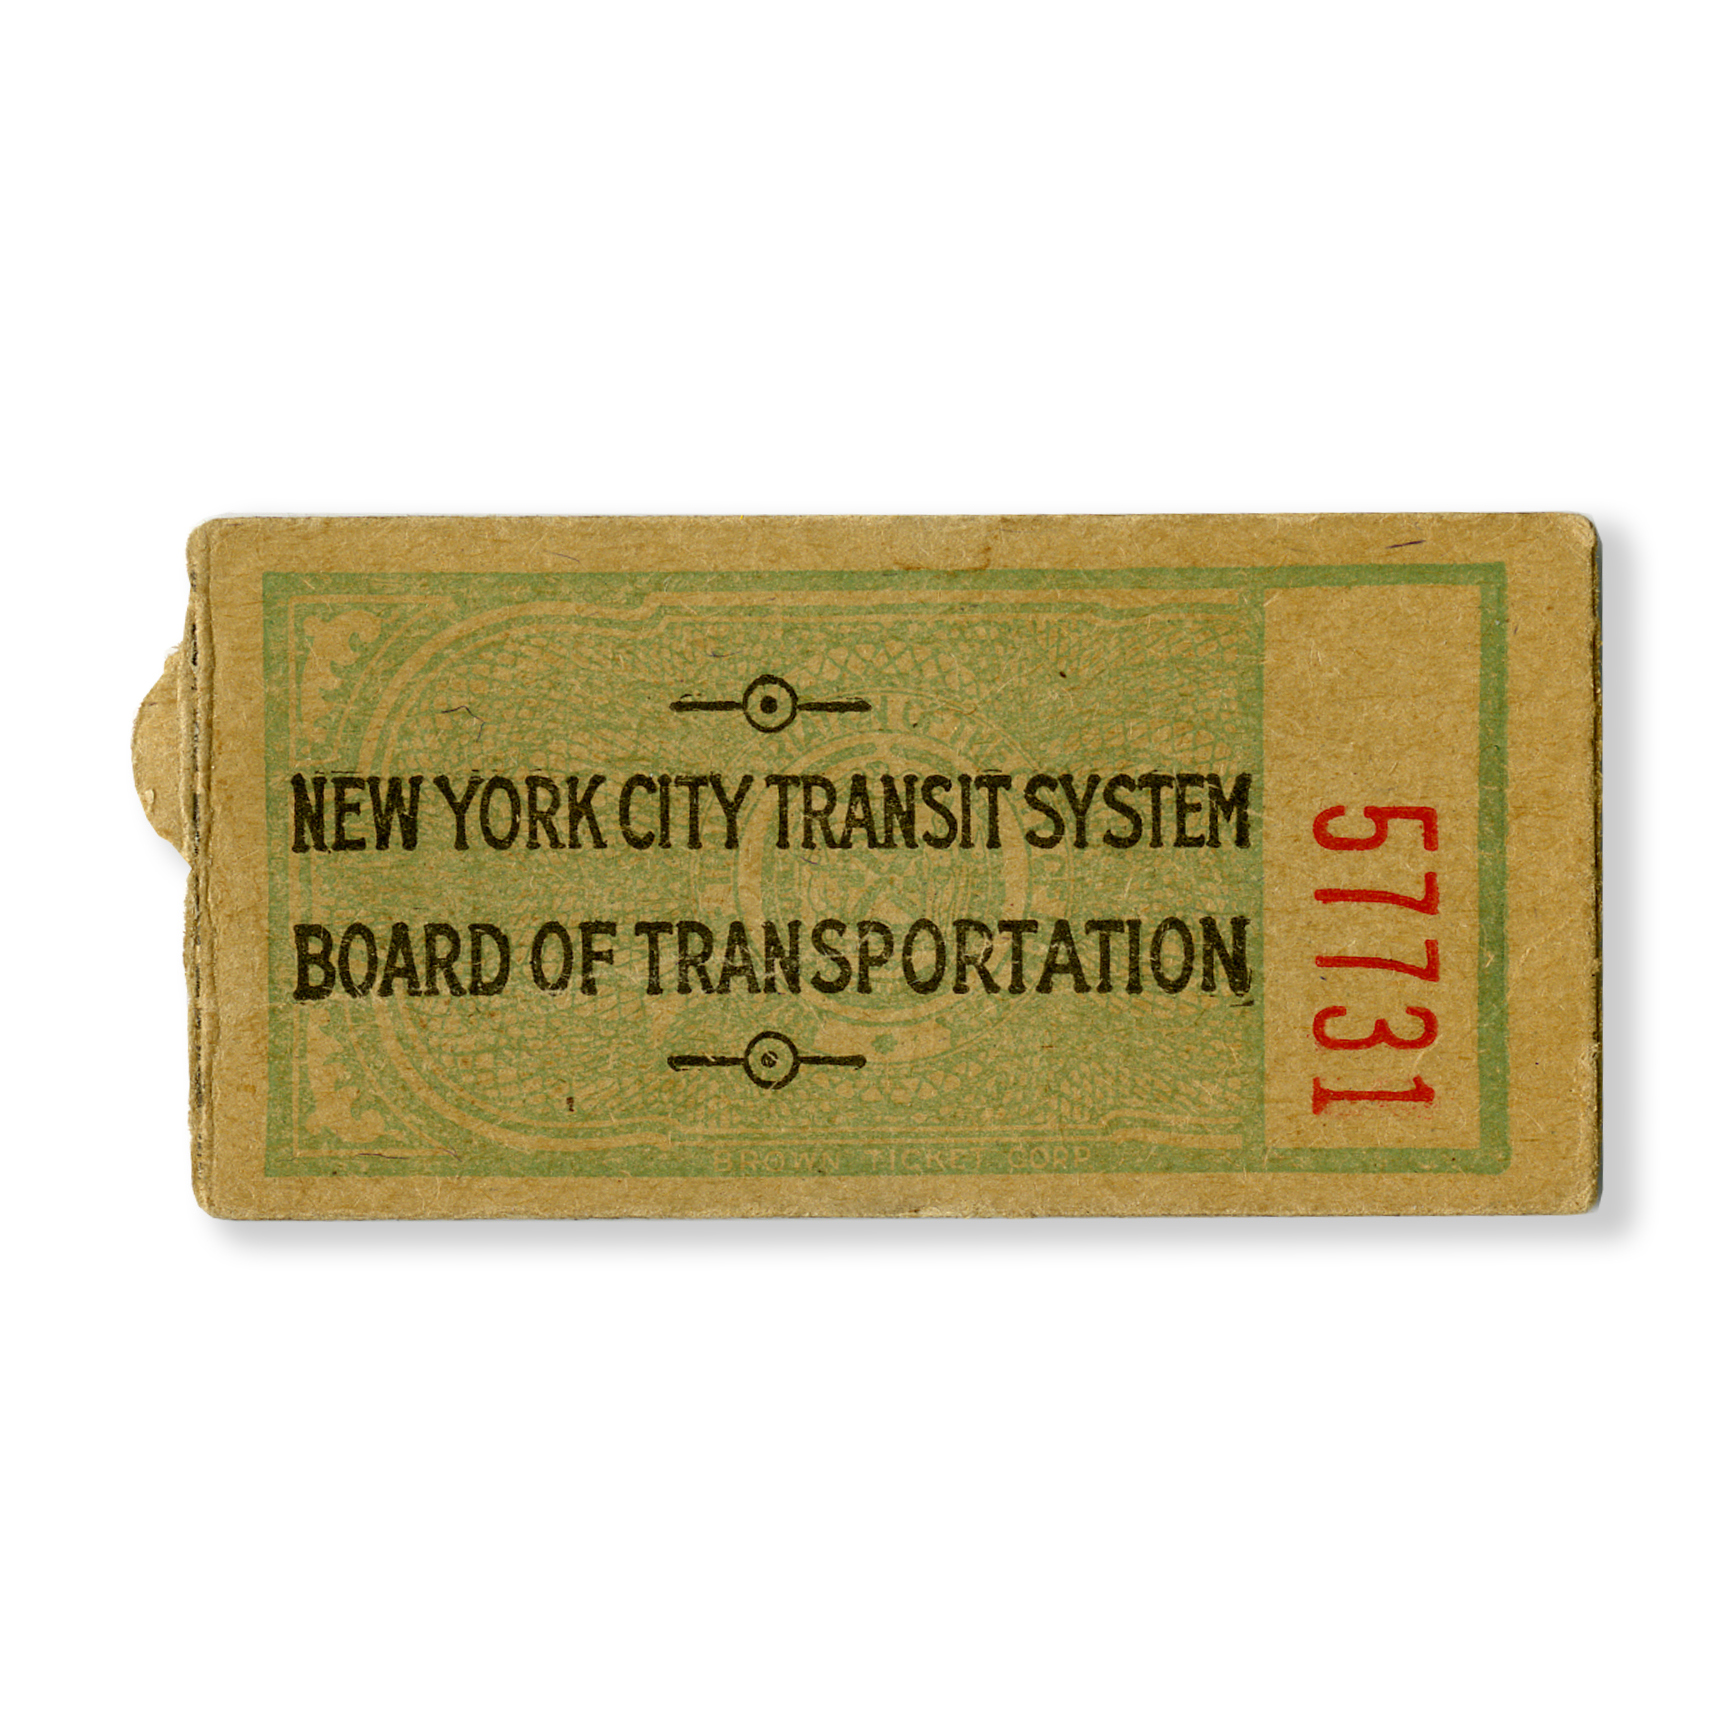 1930_the_nycta_project_nyc_board_of_transportation_ticket.jpg